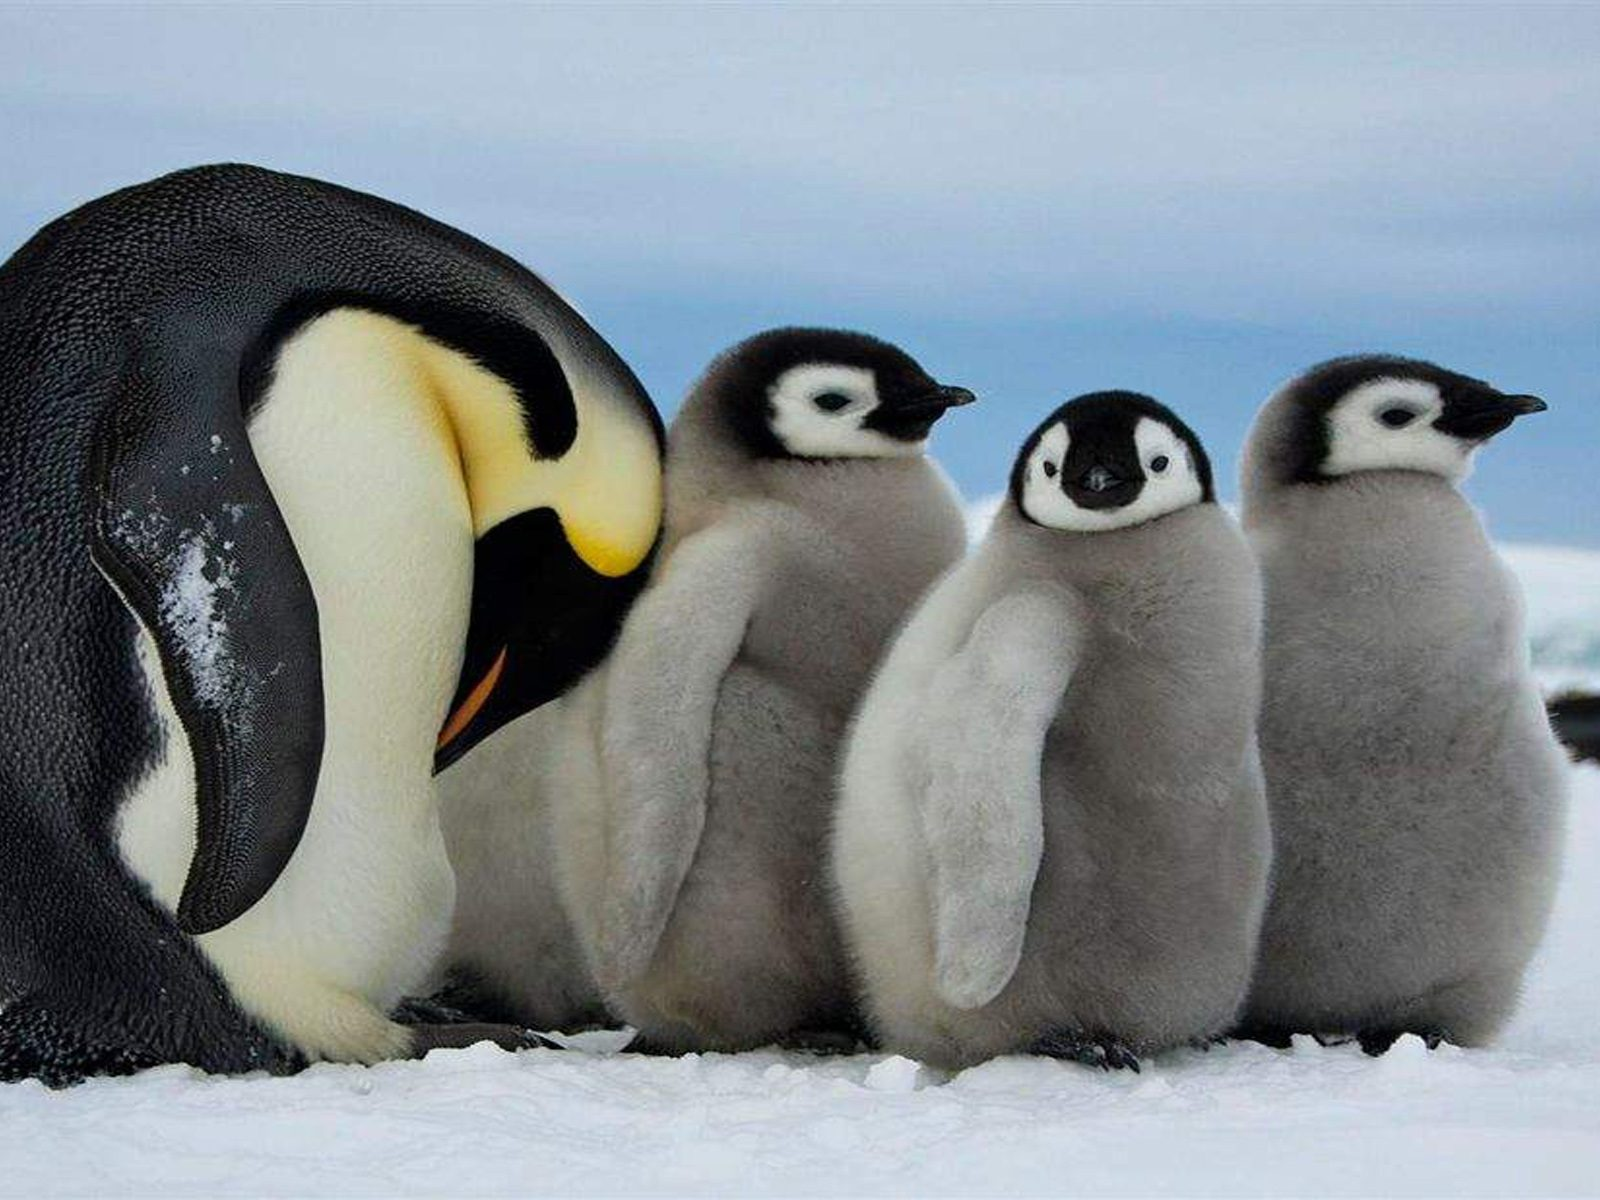 Cute Wallpapers Free Download Royal Penguin Mother And Three Cubs With Gray Fur Desktop